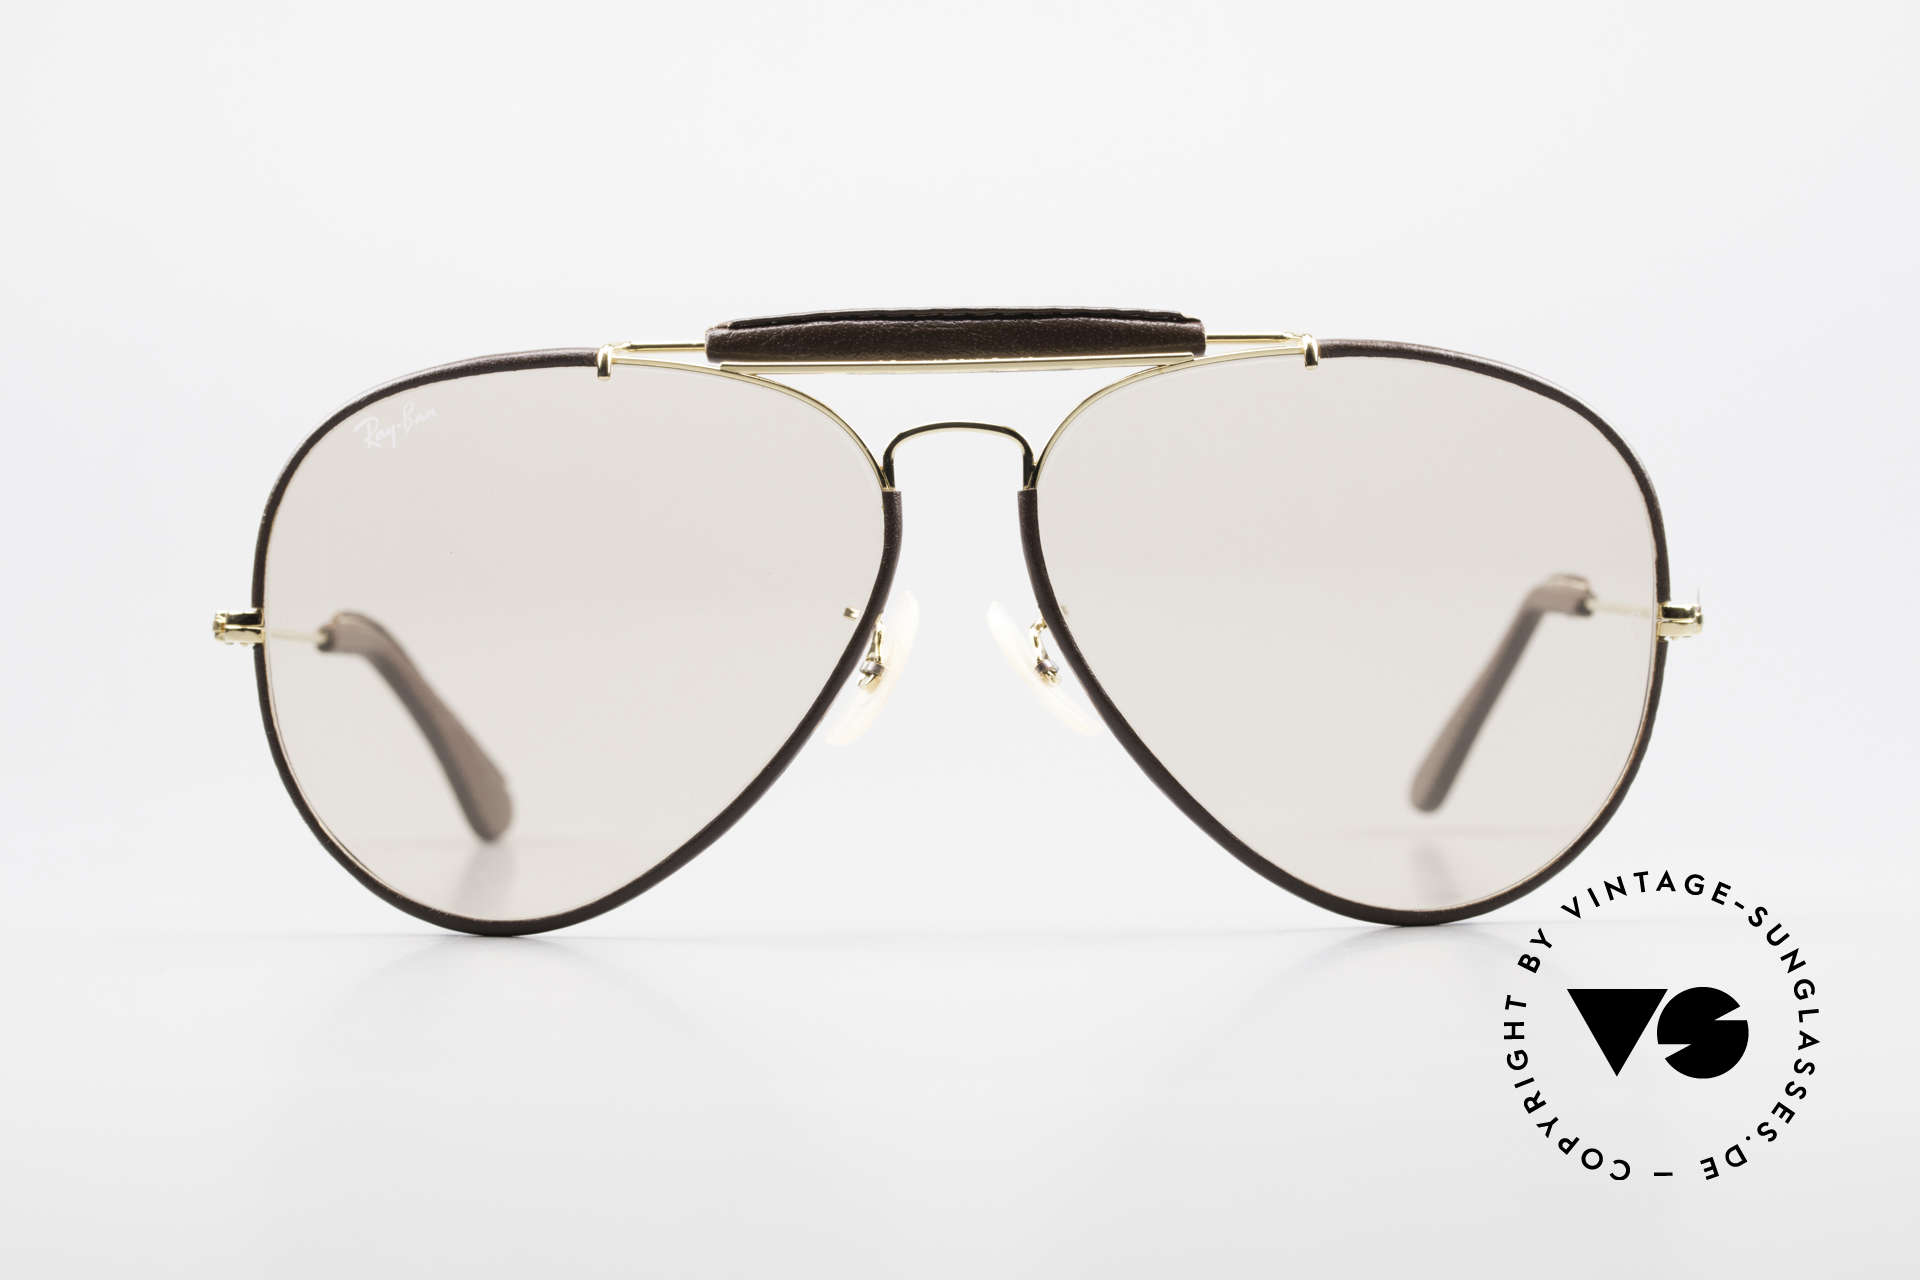 Ray Ban Outdoorsman II Changeable Leathers Shades, Special Leather Edition (very hard to find); made in USA, Made for Men